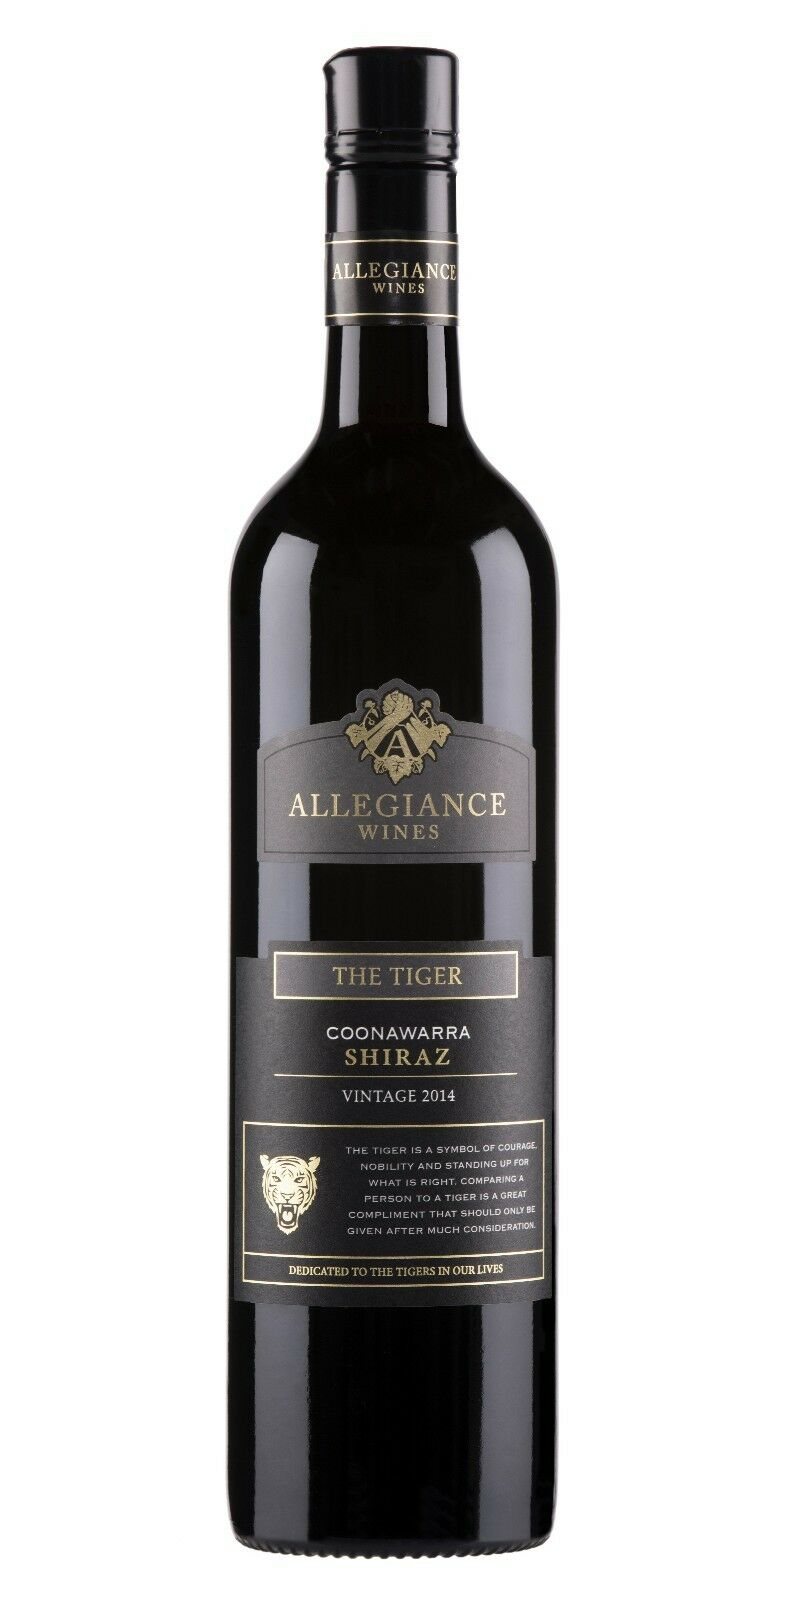 2015 X 12 Allegiance The Tiger Coonawarra Shiraz